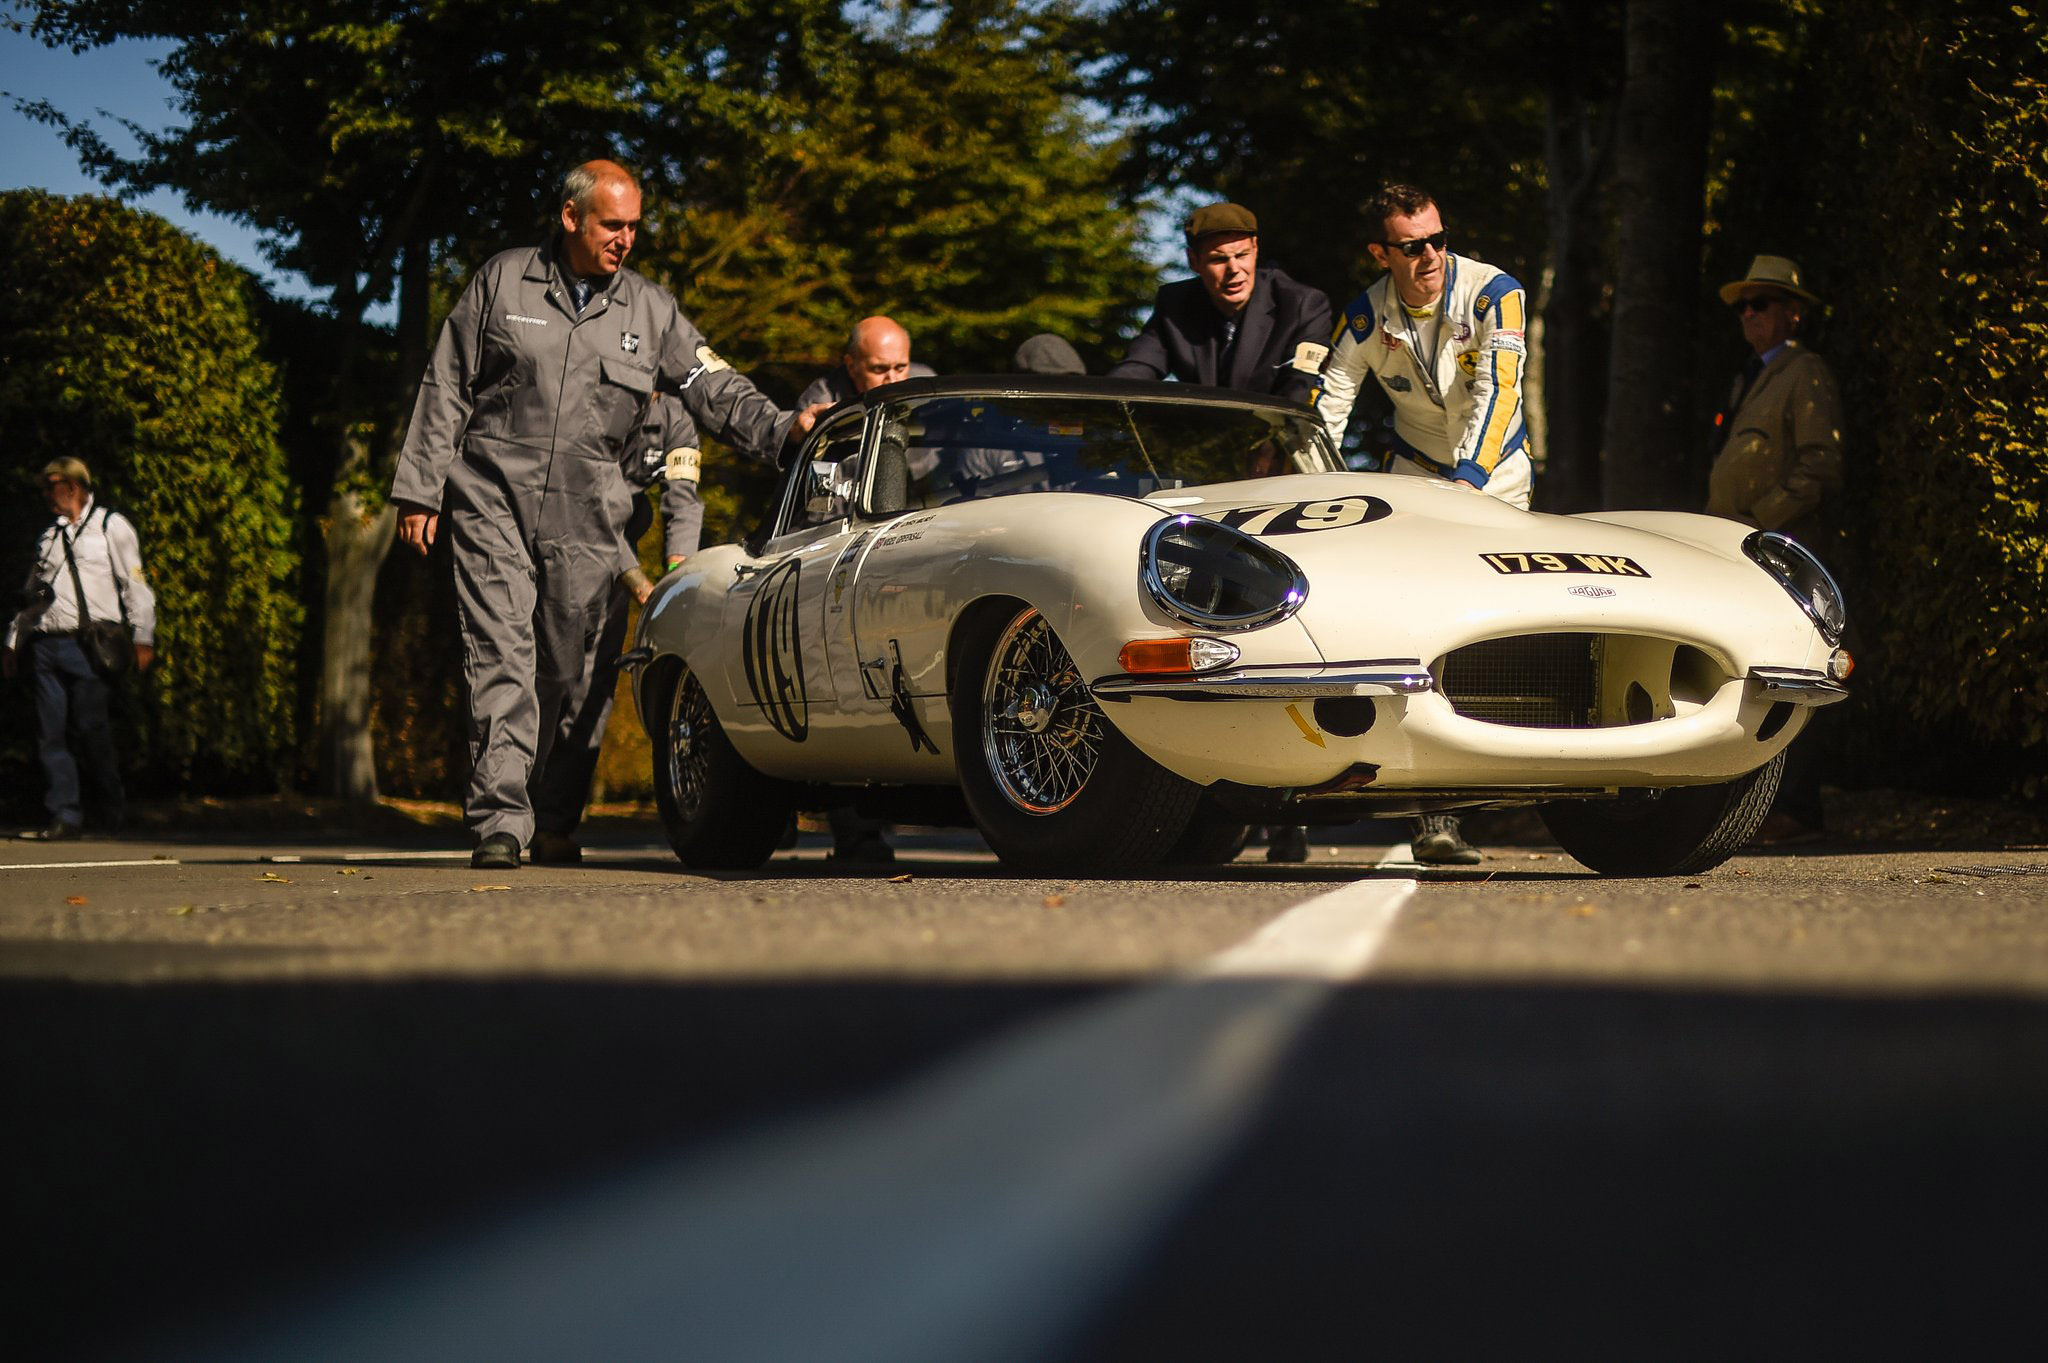 1961-Jaguar-E-Type-179WK-Goodwood Revival 2018.jpg